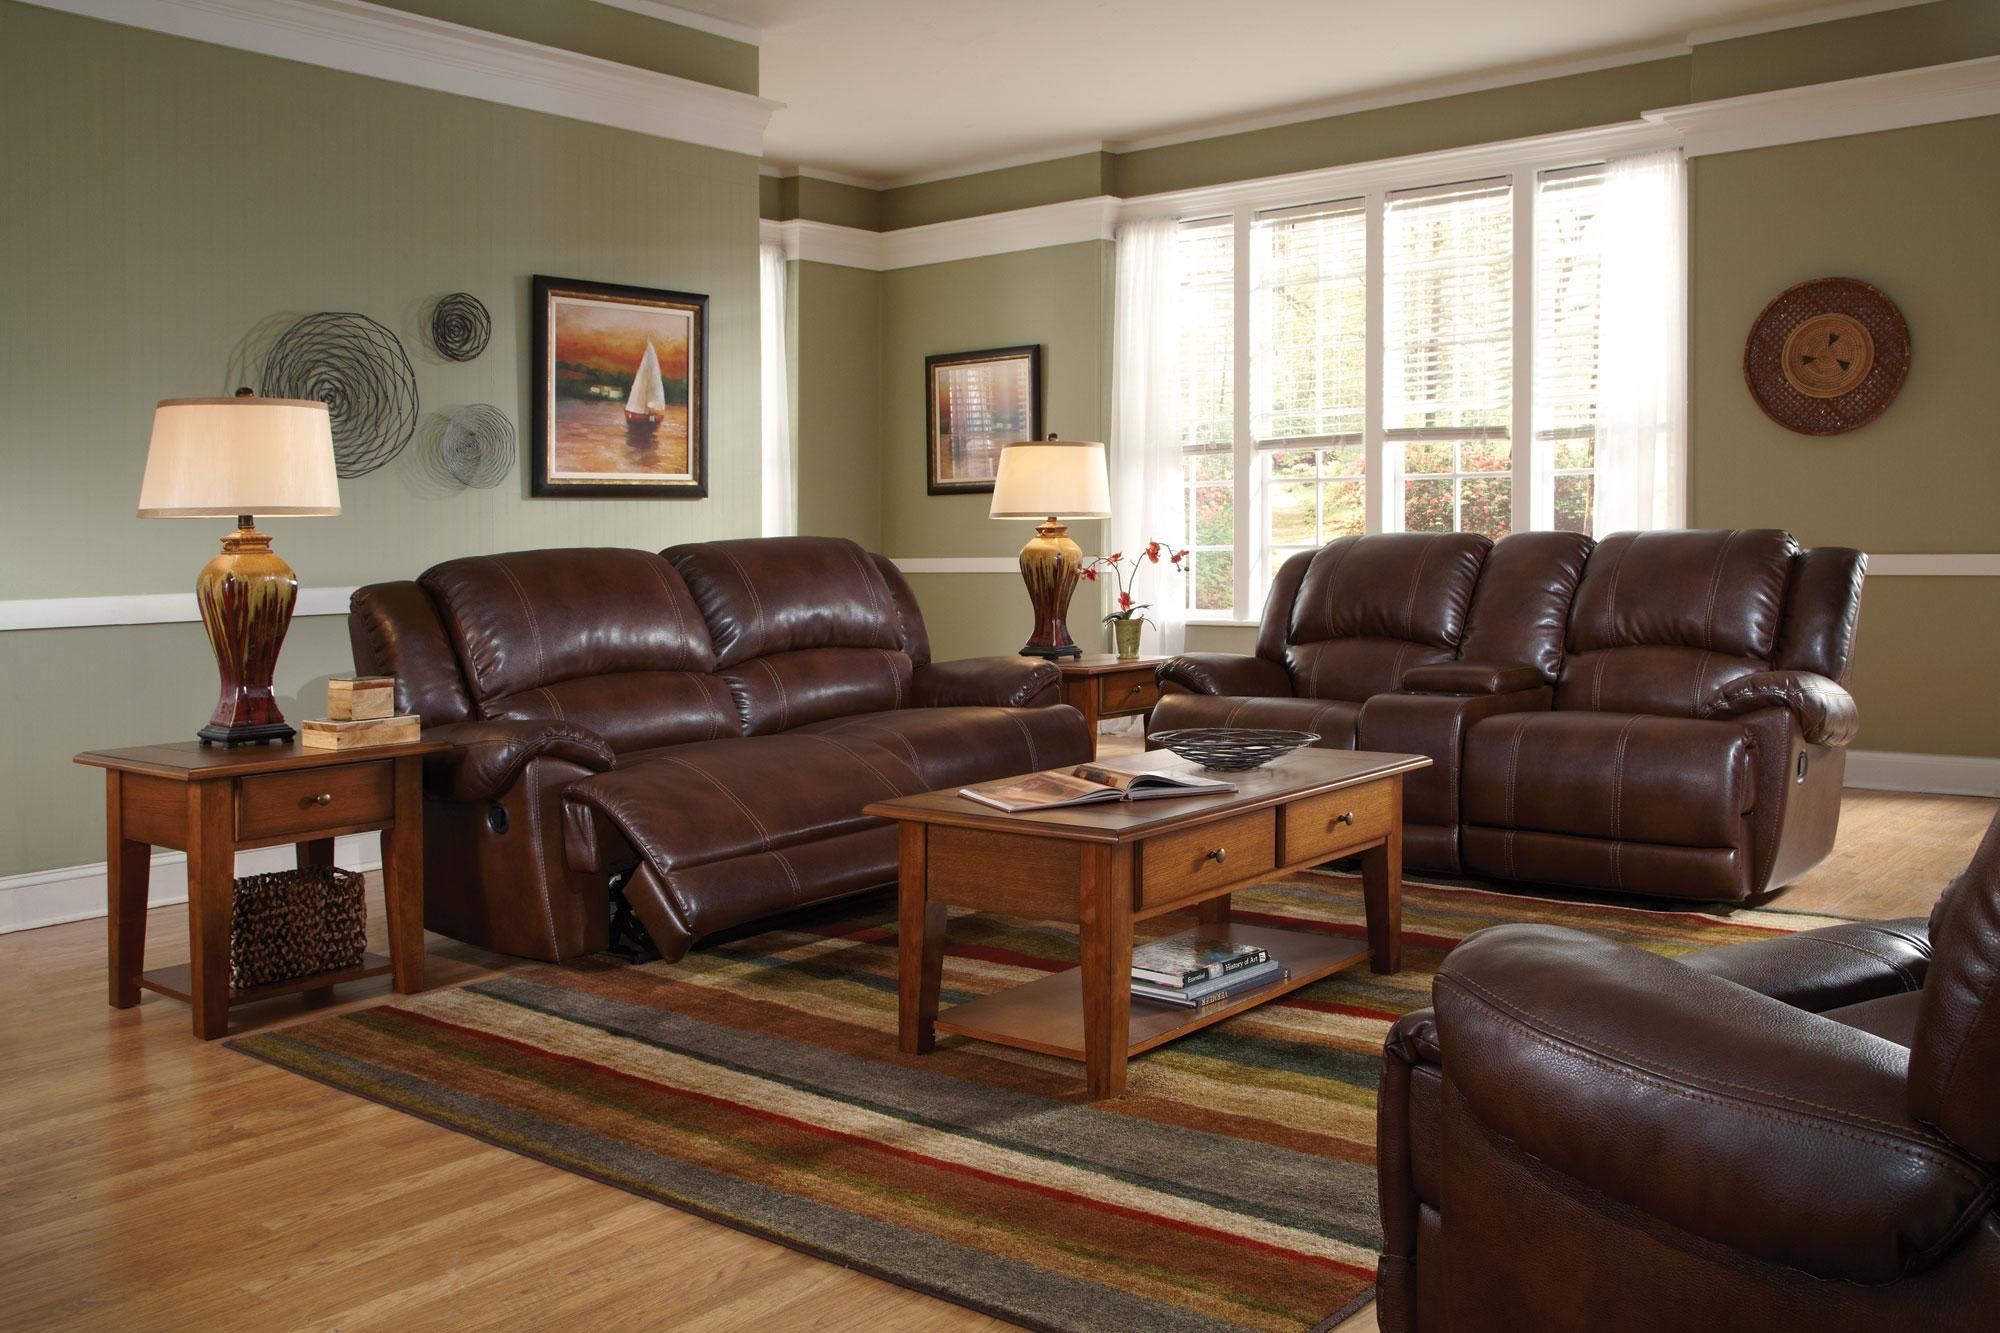 Living Room Brown Leather Couch Google Search Brown Couch Living Room Brown Living Room Brown Sofa Living Room